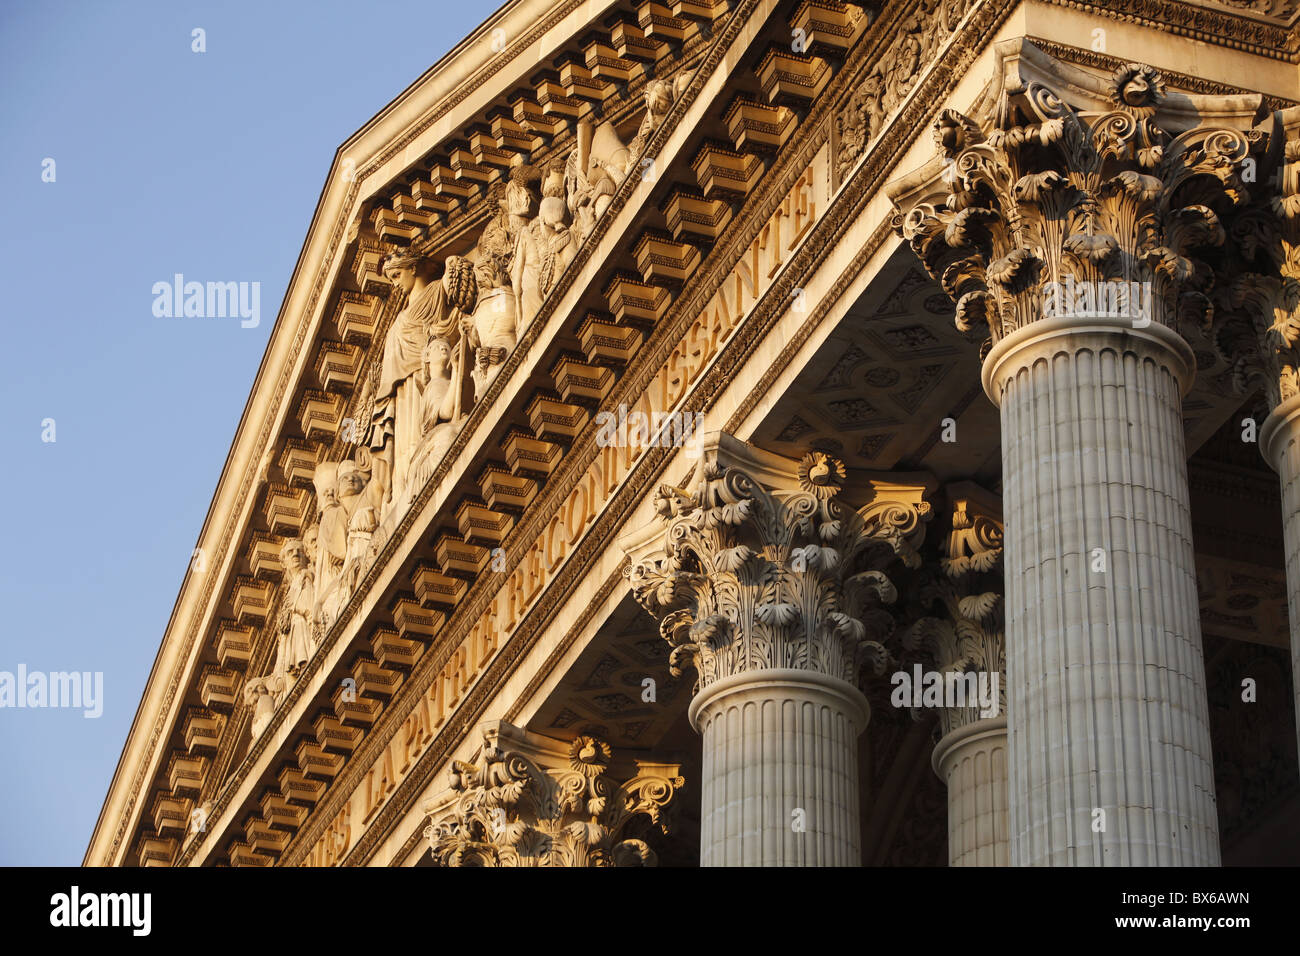 pediment and corinthian columns of the pantheon paris france europe stock image